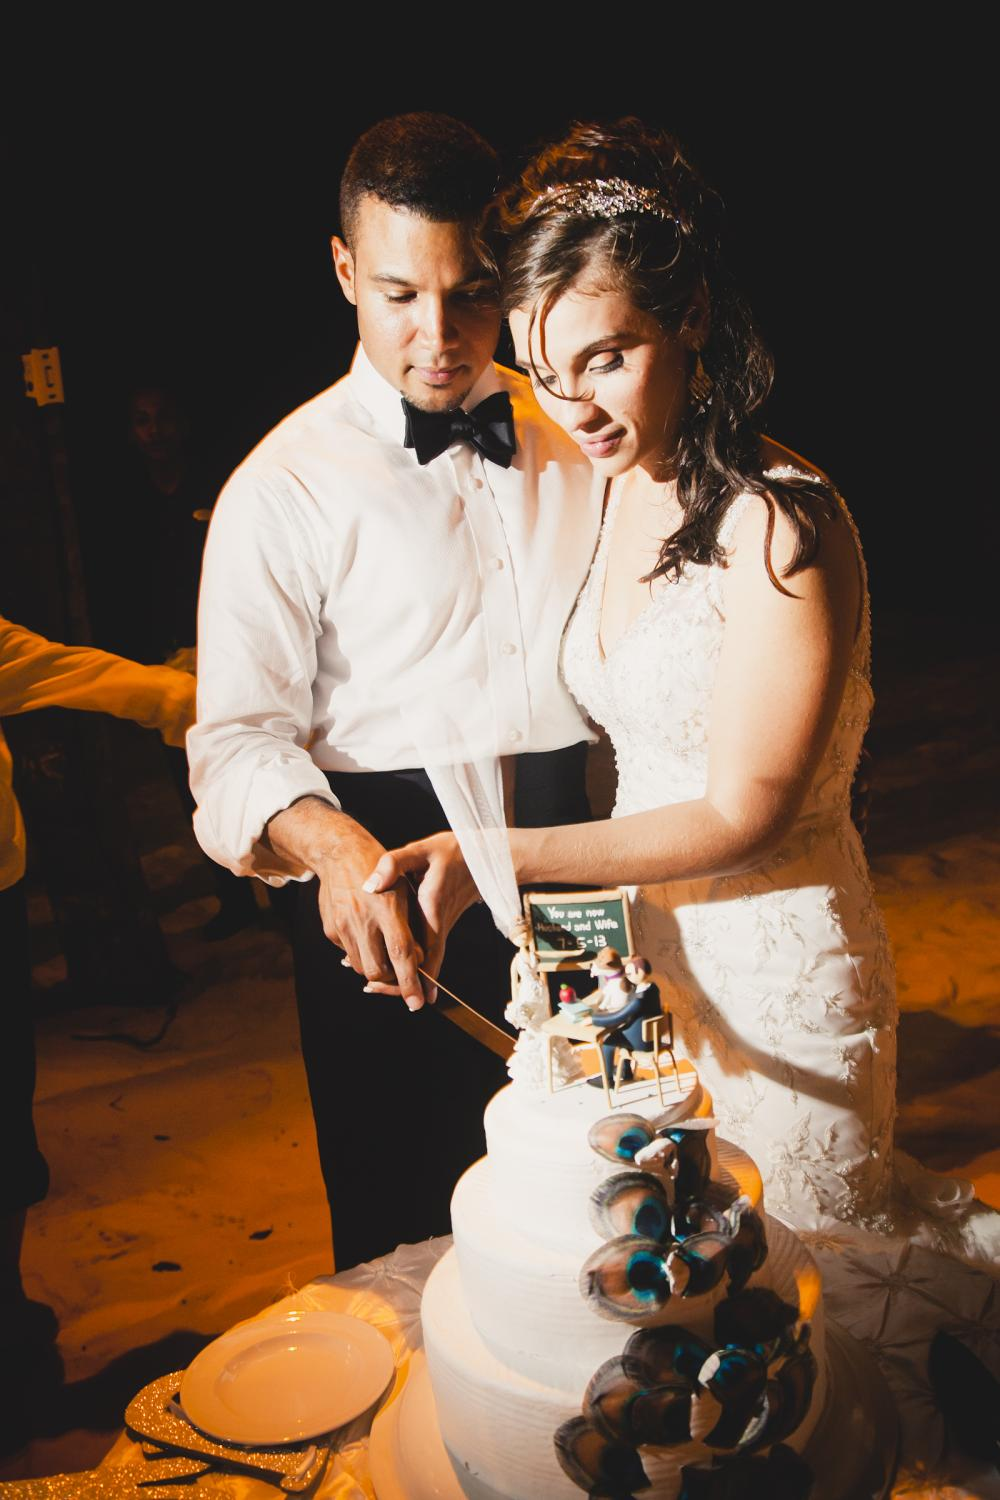 Cutting our cake